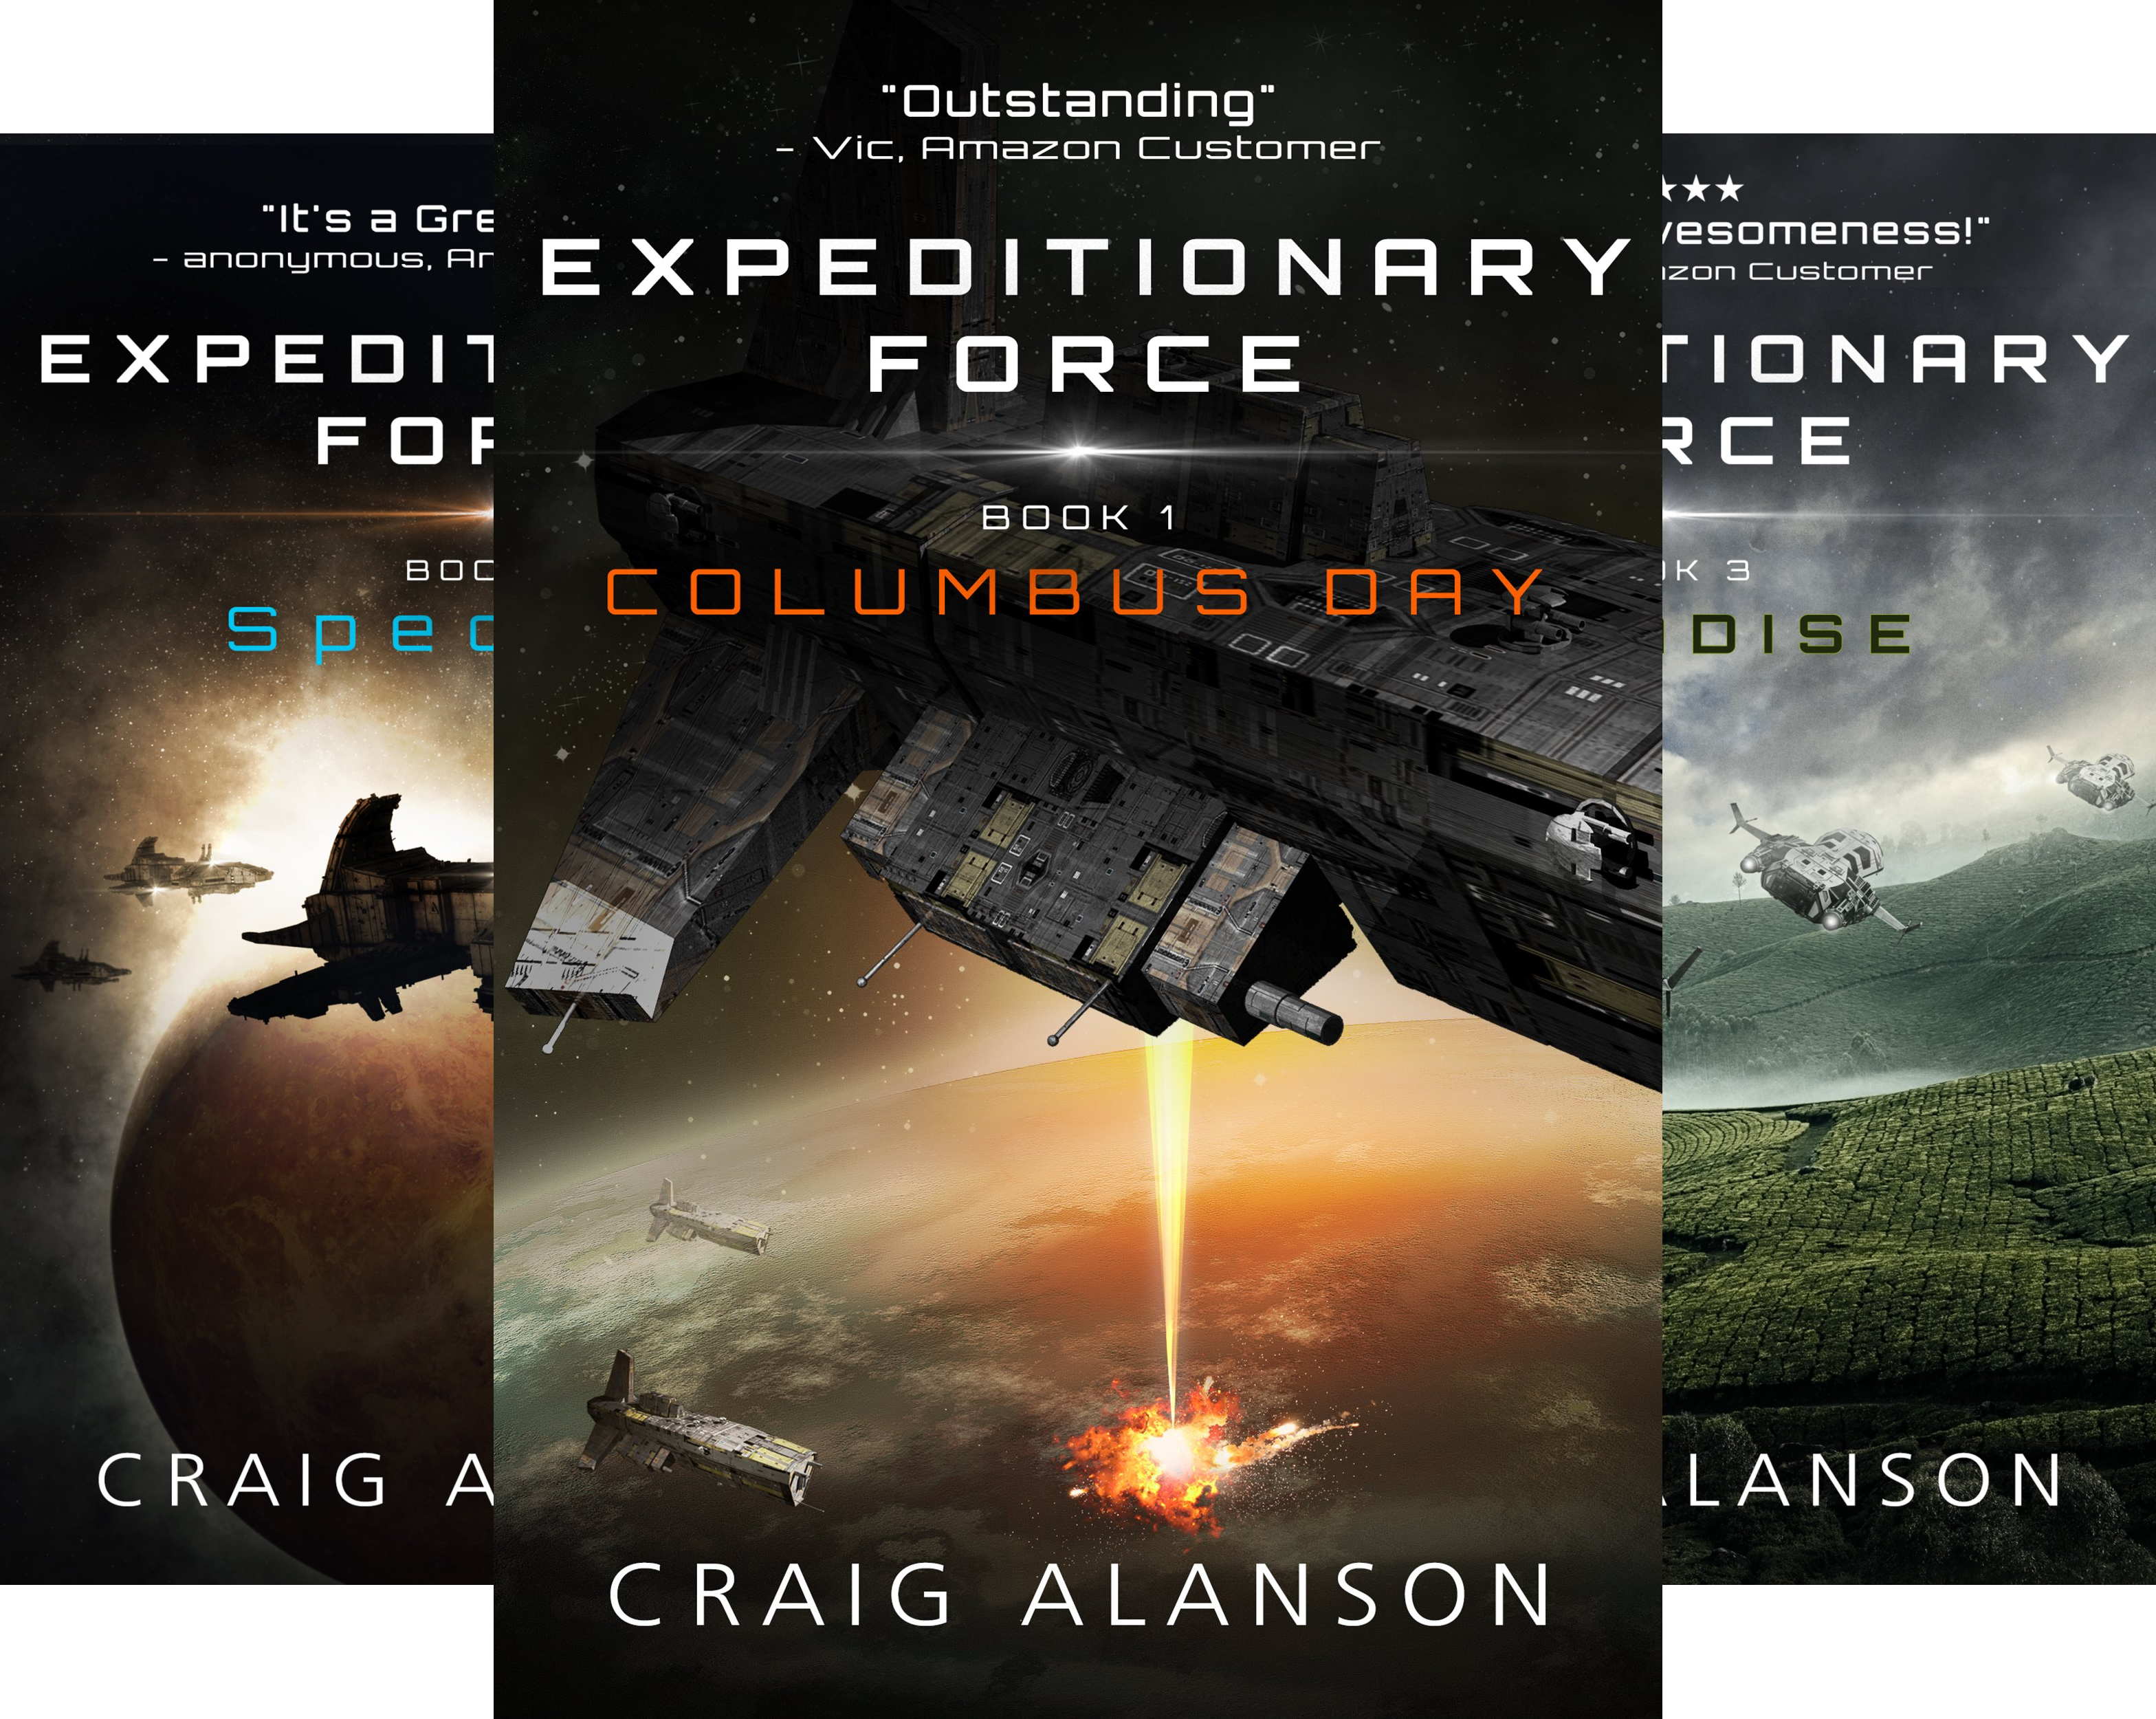 expeditionary force book 6